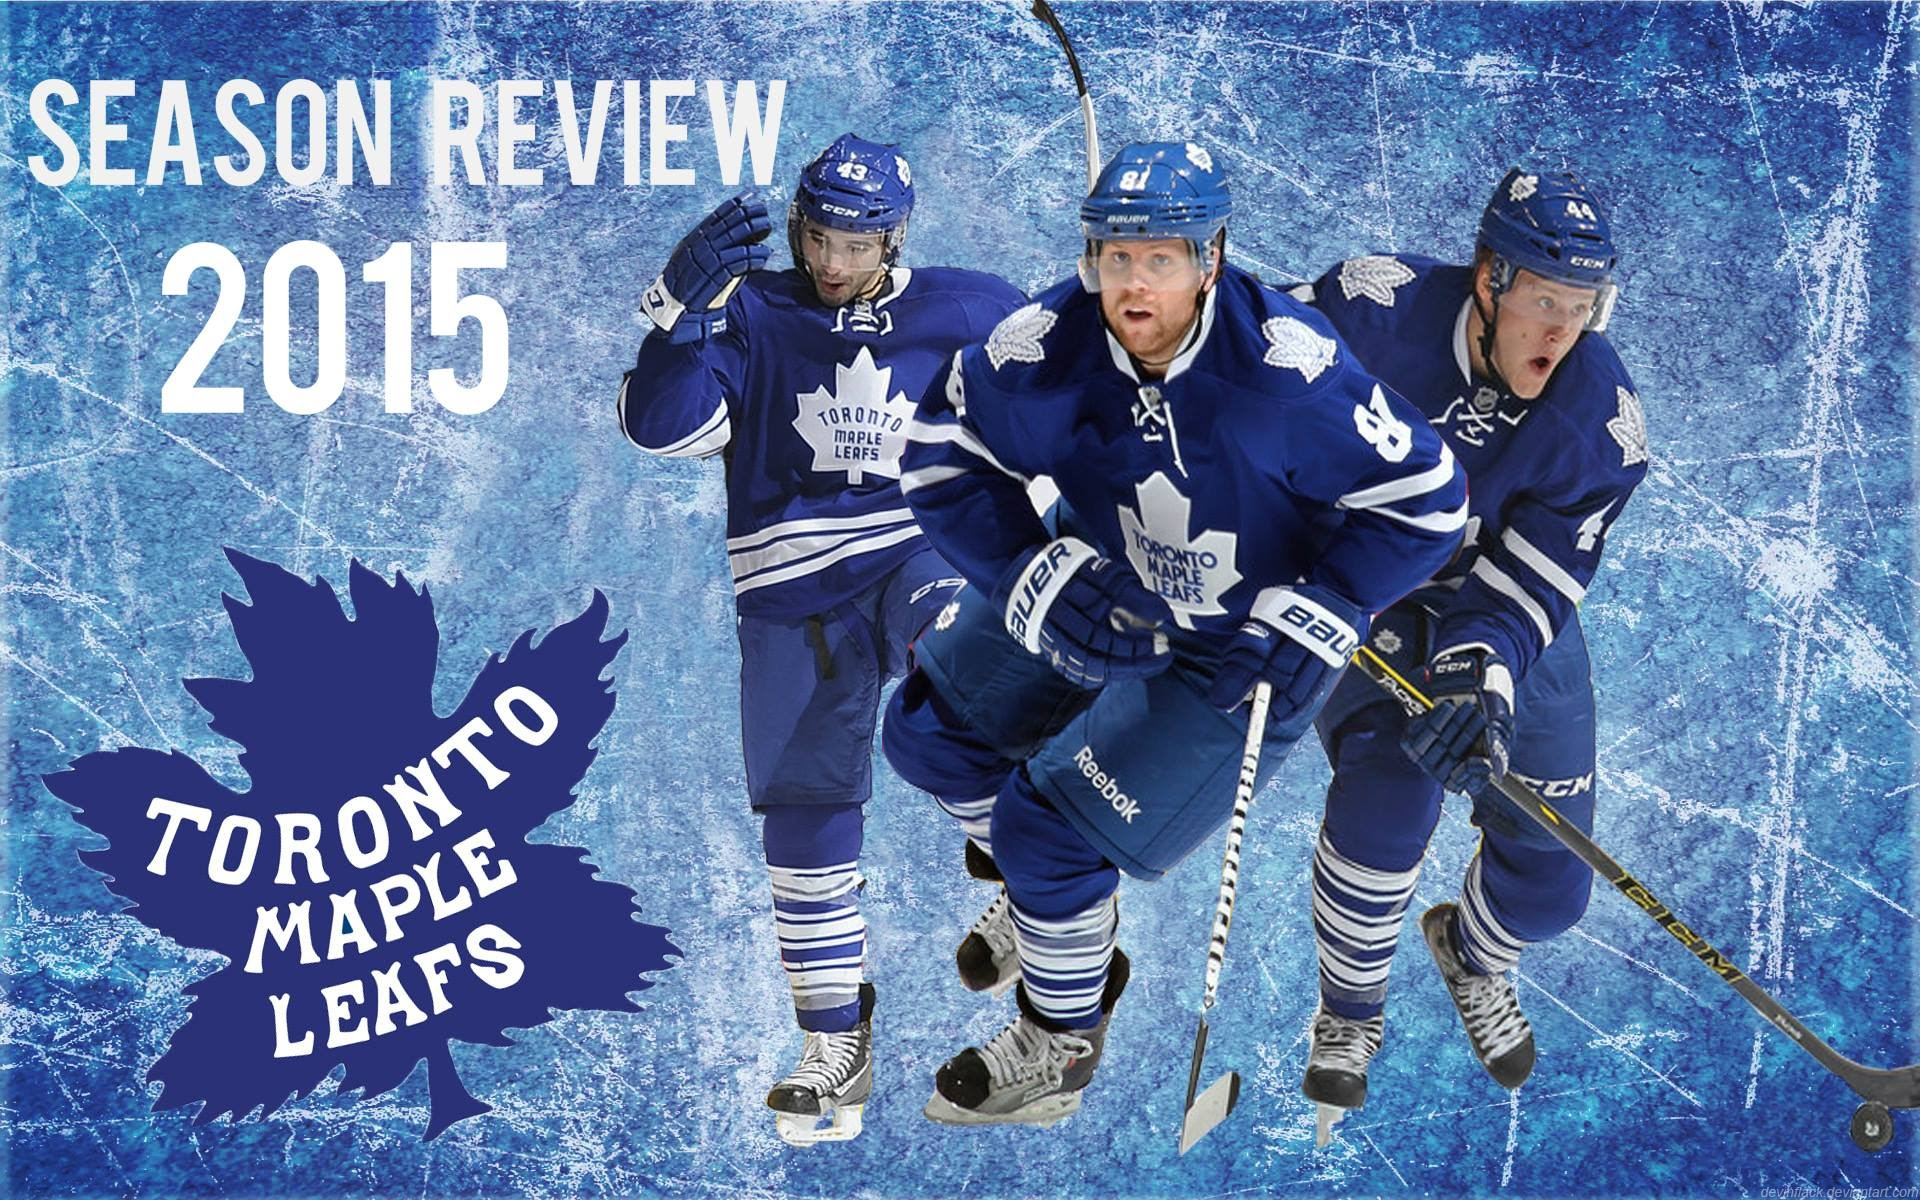 Toronto Maple Leafs Wallpaper Pictures, Images  Photos  Photobucket 1920x1200